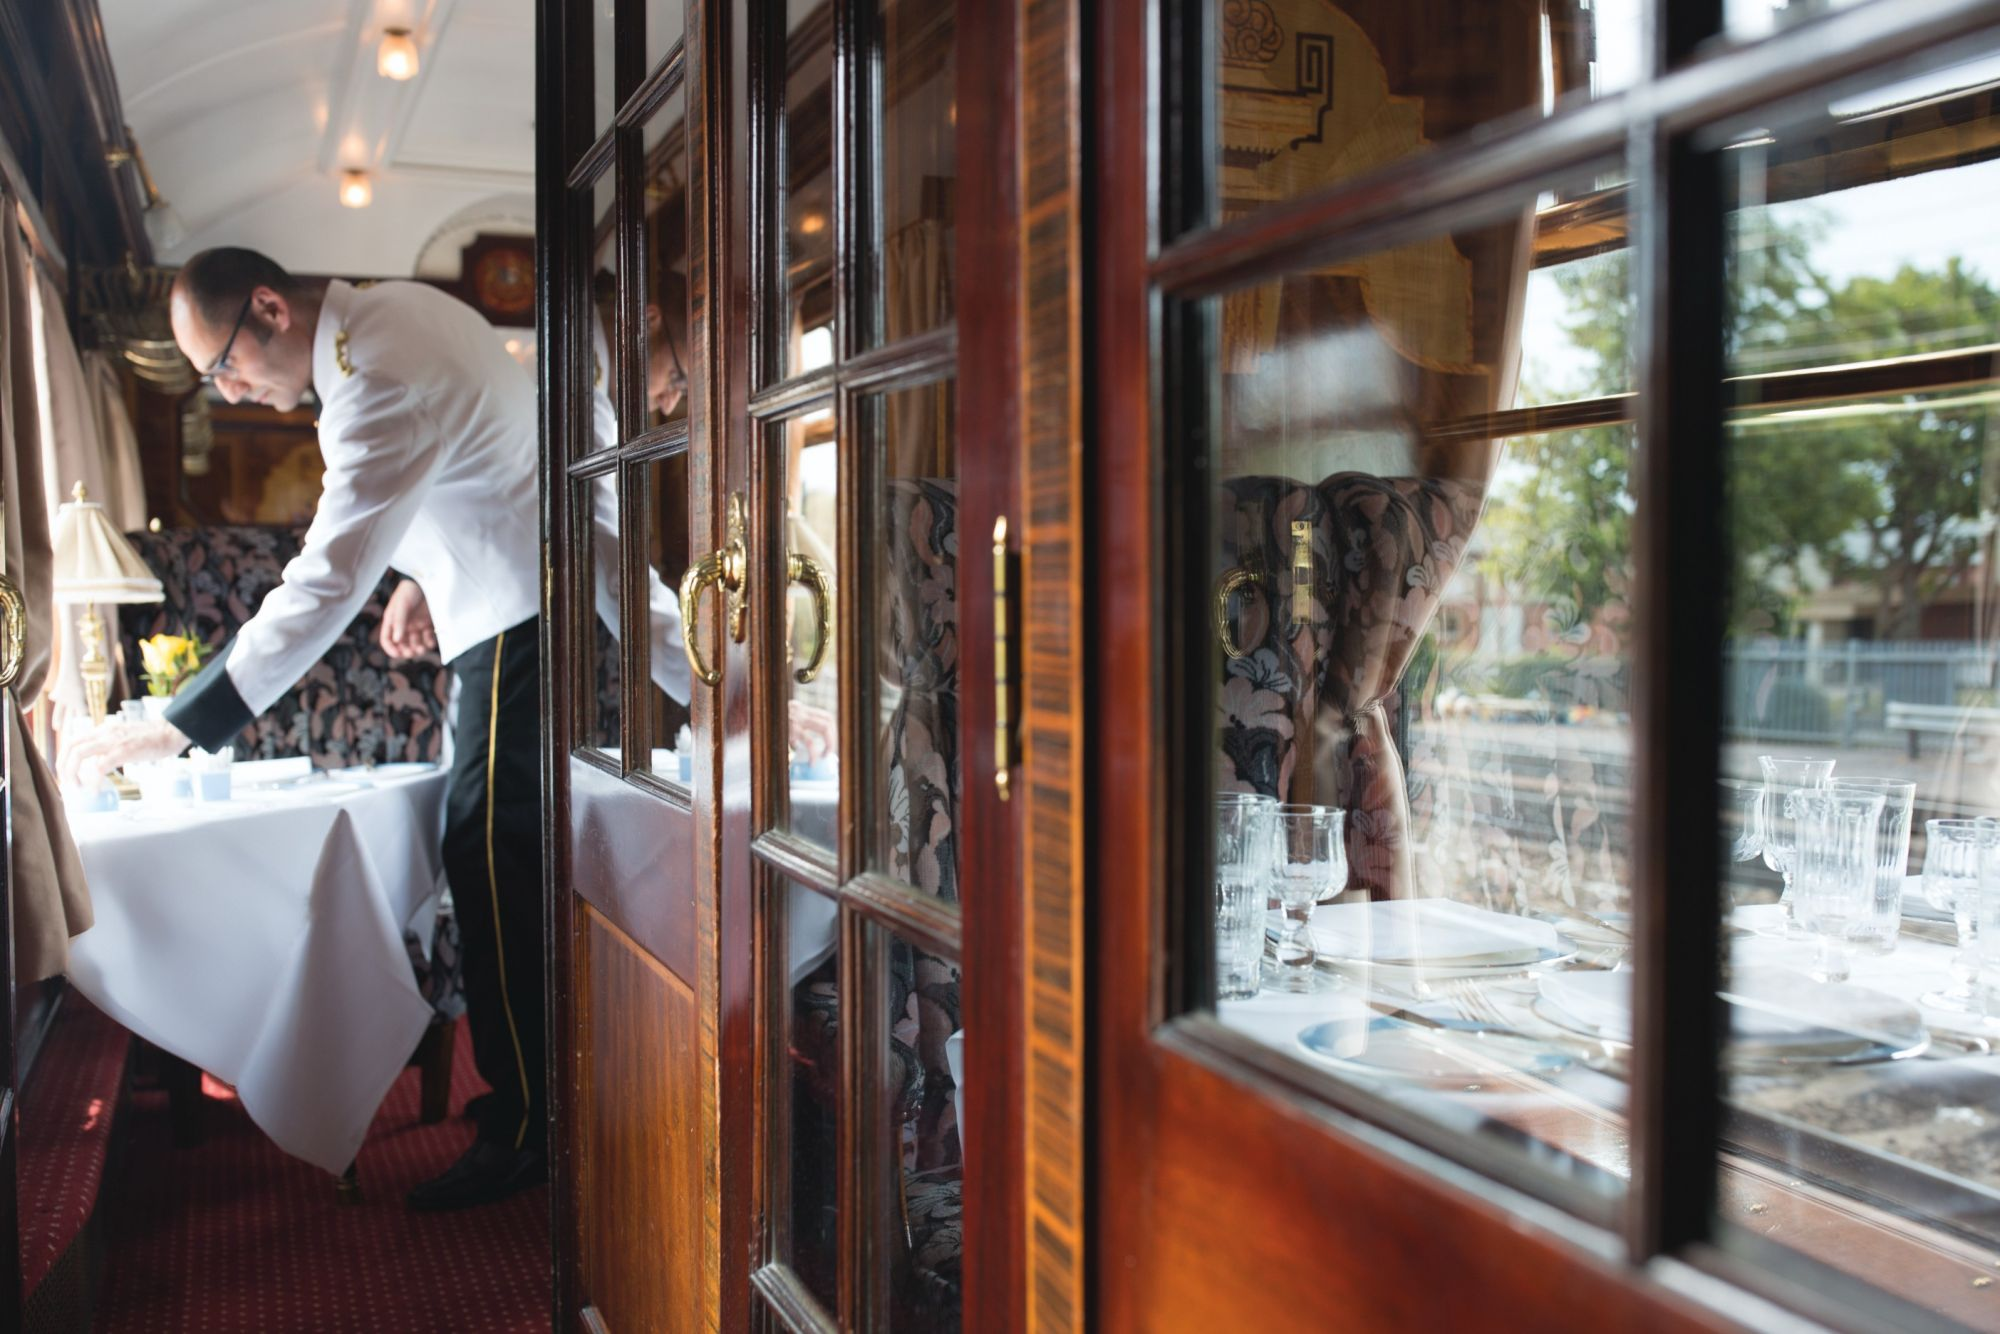 Embark On A Culinary Journey With Britain's Finest Chefs